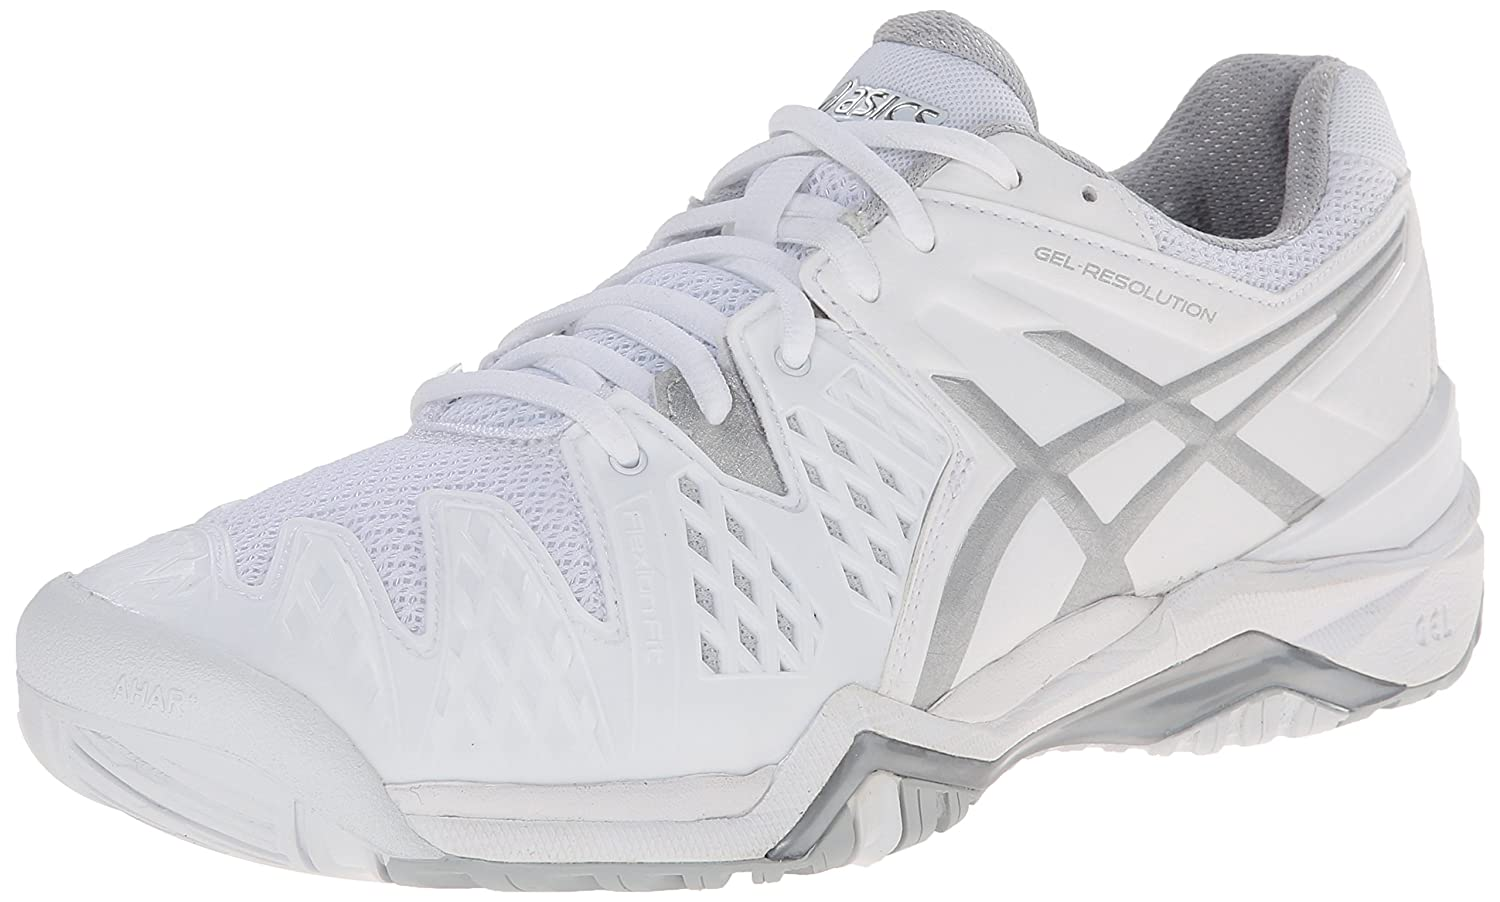 ASICS Gel Resolution 6 WIDE Women's Tennis Shoe White/Silver - WIDE version B00KI5V5HY 5 B(M) US|White/Silver